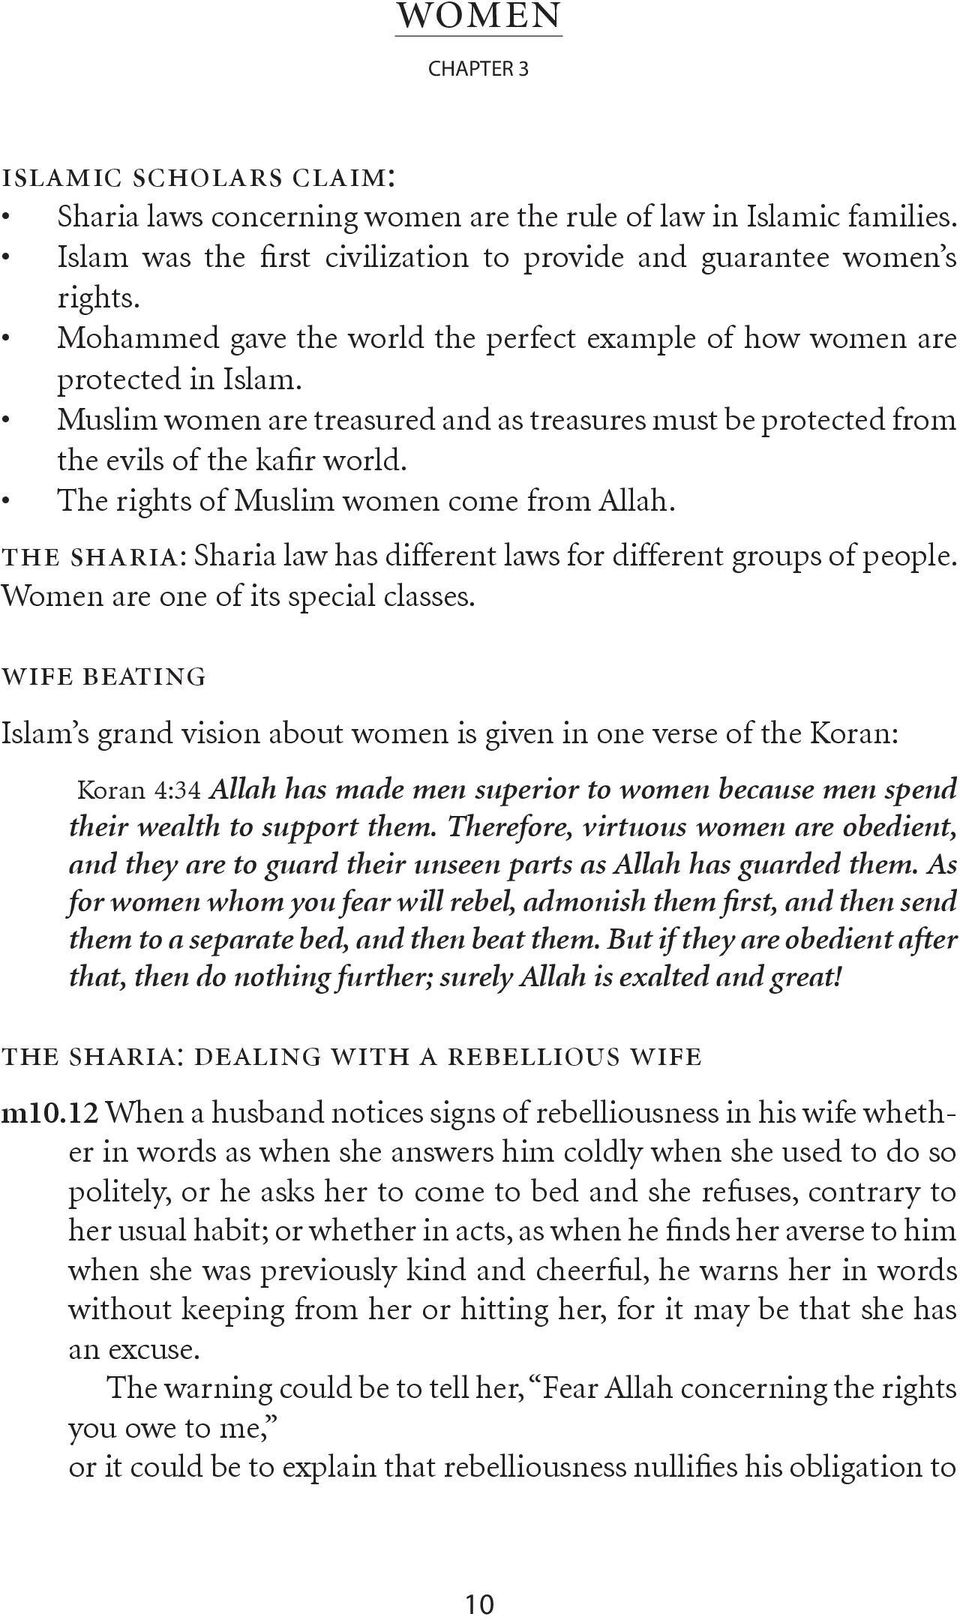 The rights of Muslim women come from Allah. the sharia: Sharia law has different laws for different groups of people. Women are one of its special classes.